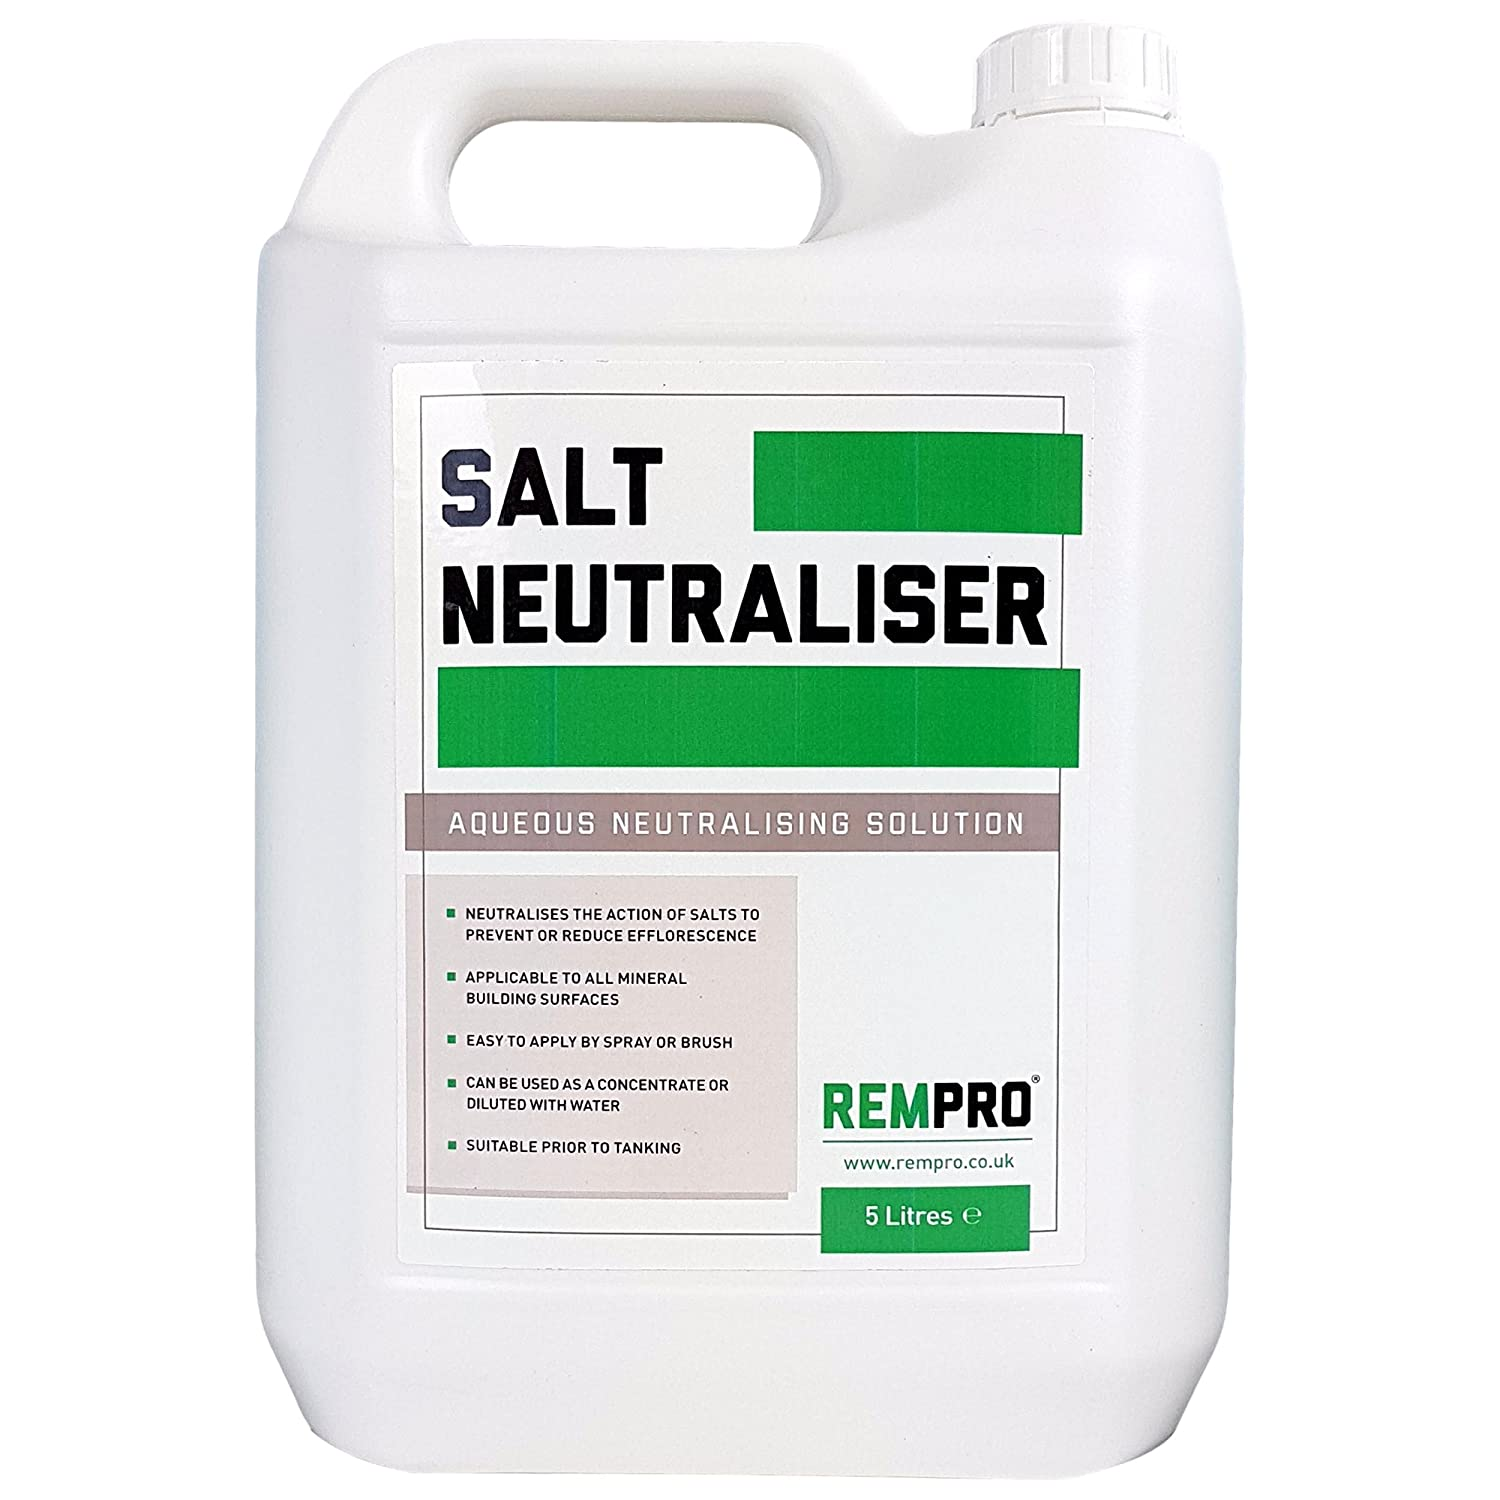 5ltr Rempro Salt Neutraliser Anti-sulphate Tanking & Surface Treatment for Masonry, Stone, Brick, Plaster Seahaven Ltd REMSN5-FBA